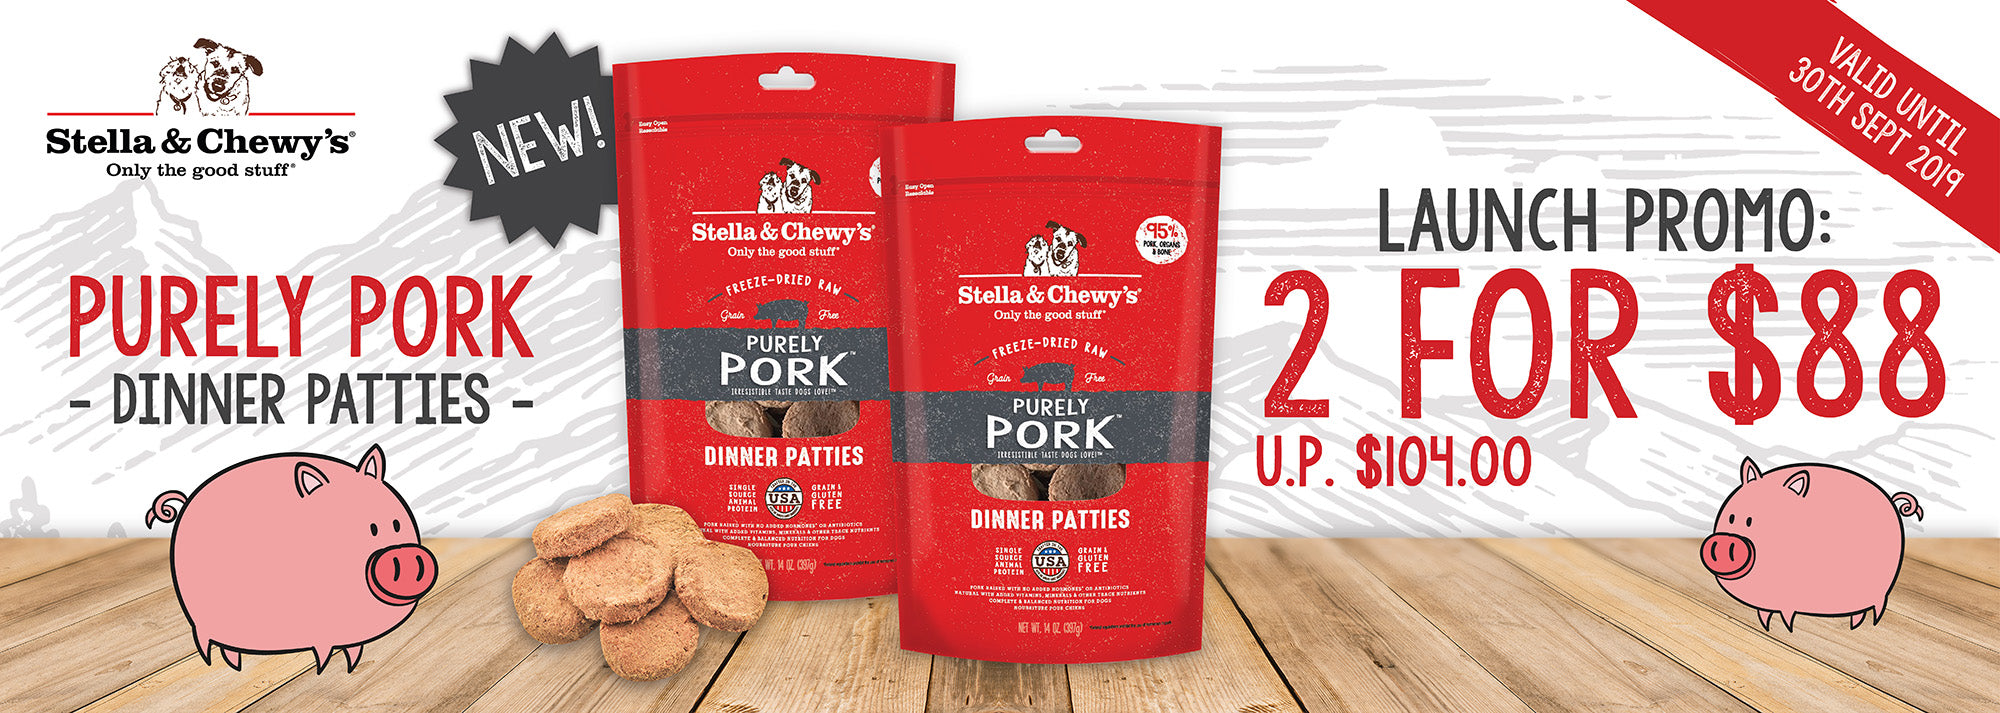 stella & chewy's purely pork dinner patties freeze-dried dog food 14oz promotion banner